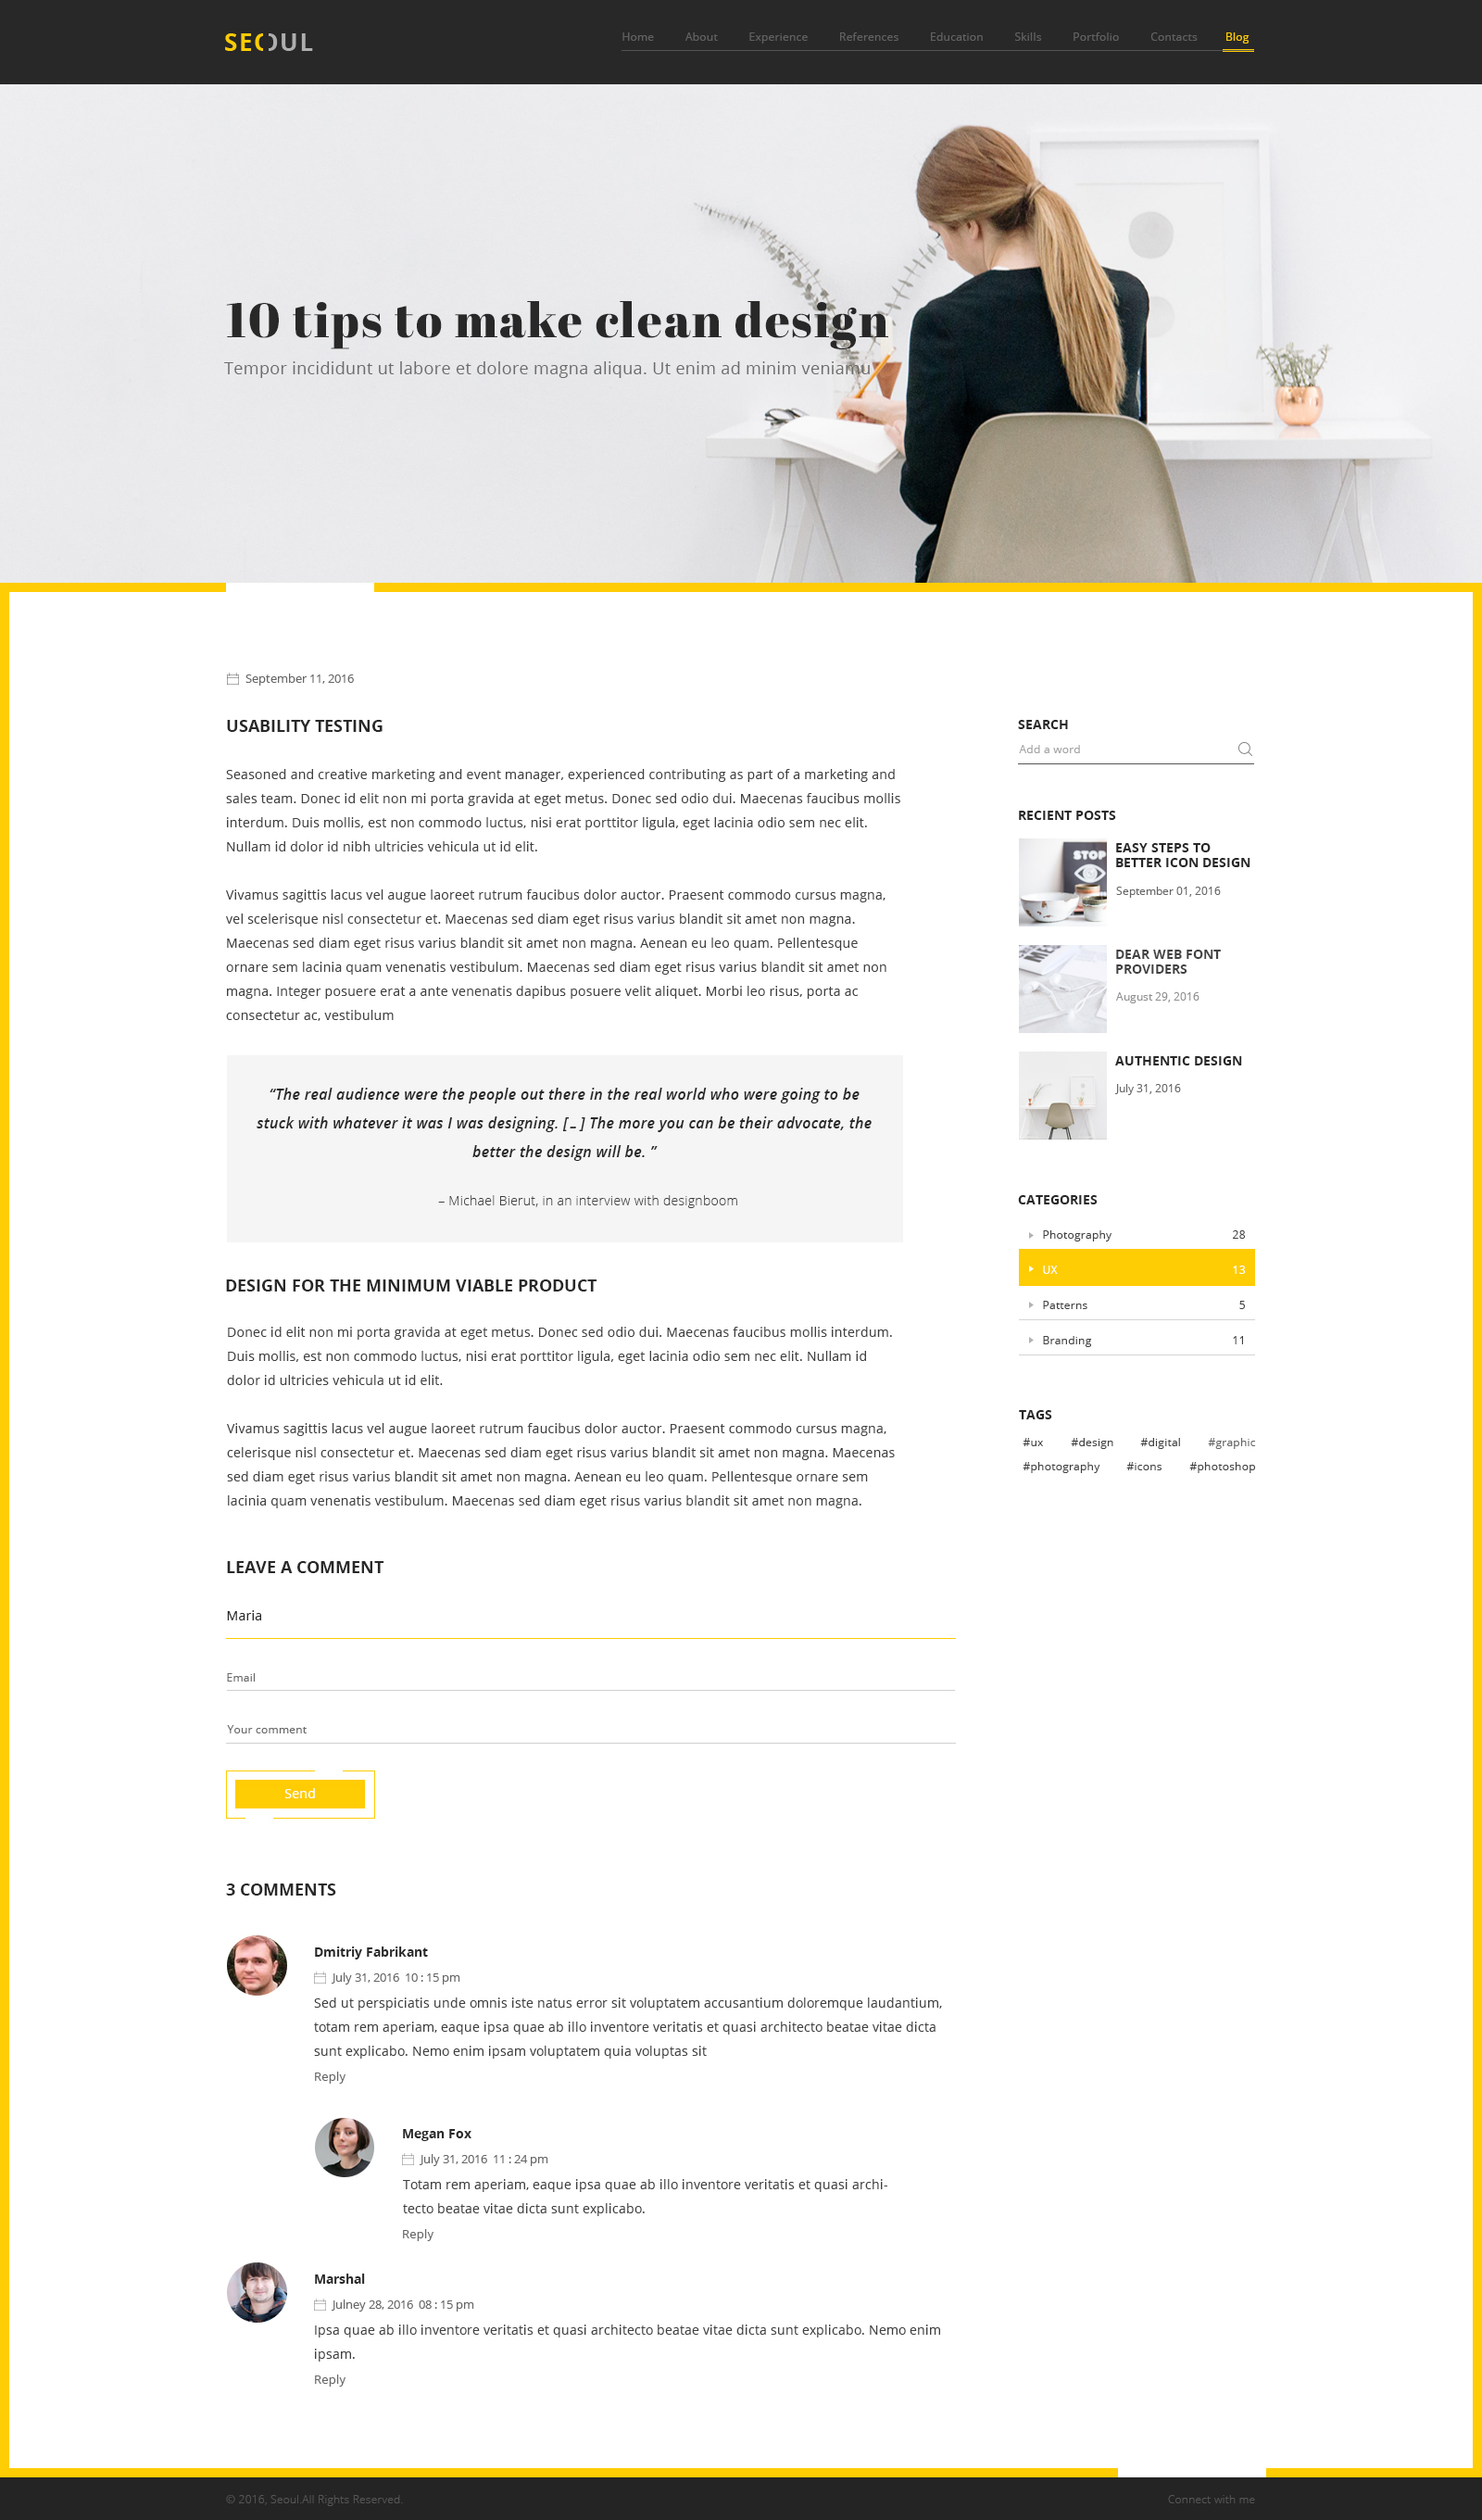 Seoul Personal Resume PSD Template by wpbrothers